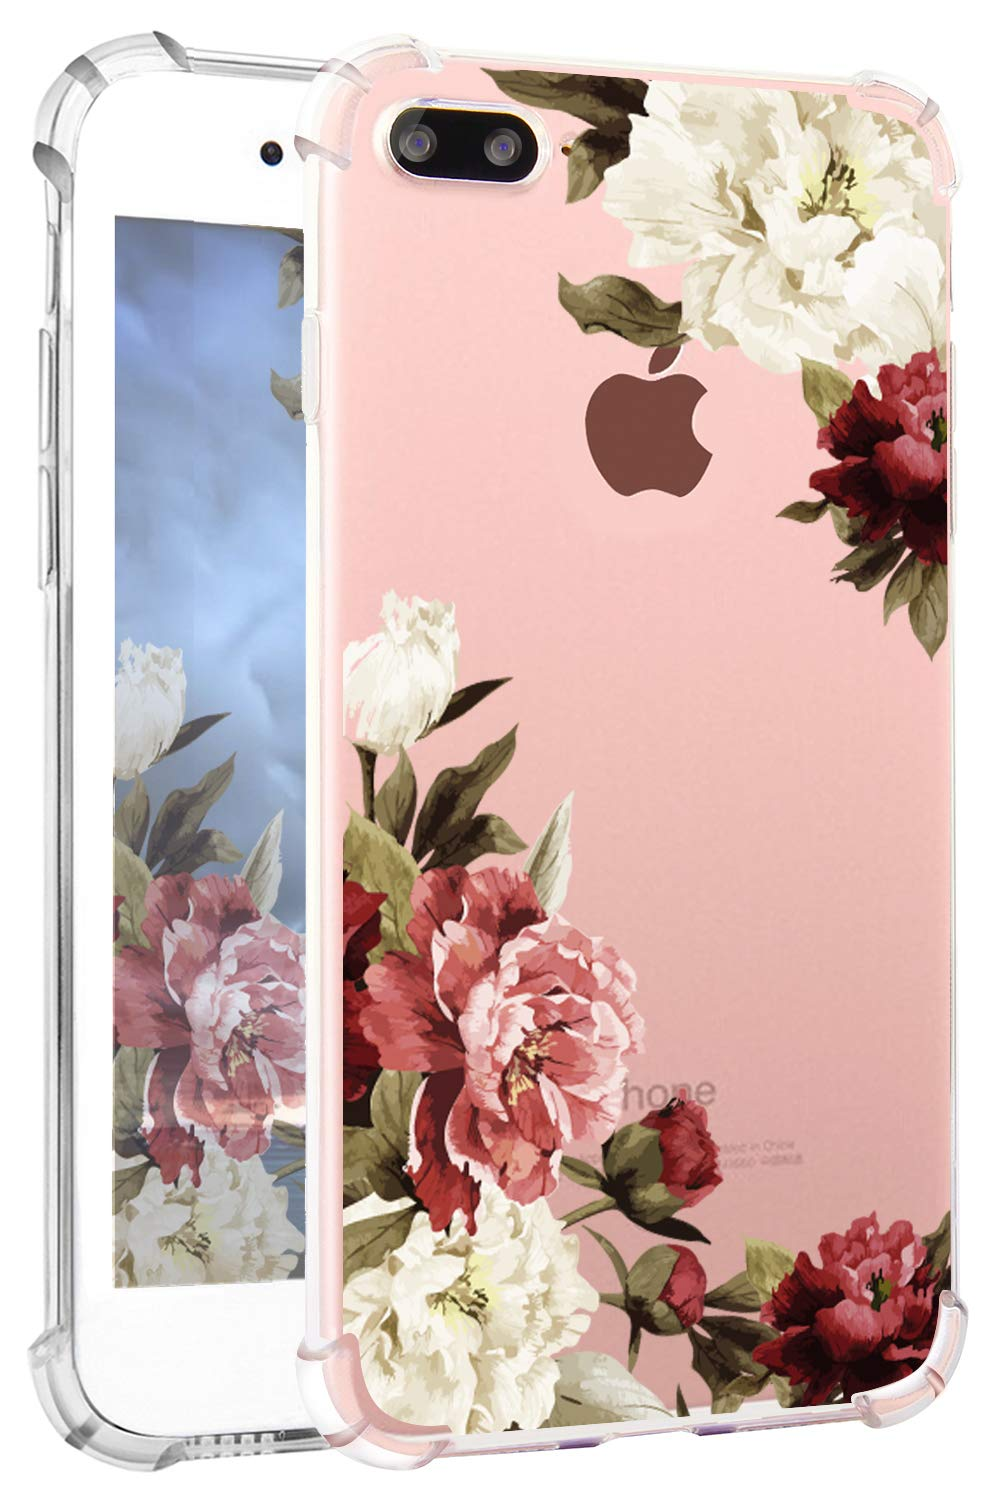 Hepix iPhone 8 Plus Floral Case iPhone 7 Plus Case Clear Soft Flexible TPU Watercolor Flowers Floral Print Phone Cover with Bumper for iPhone 7 Plus